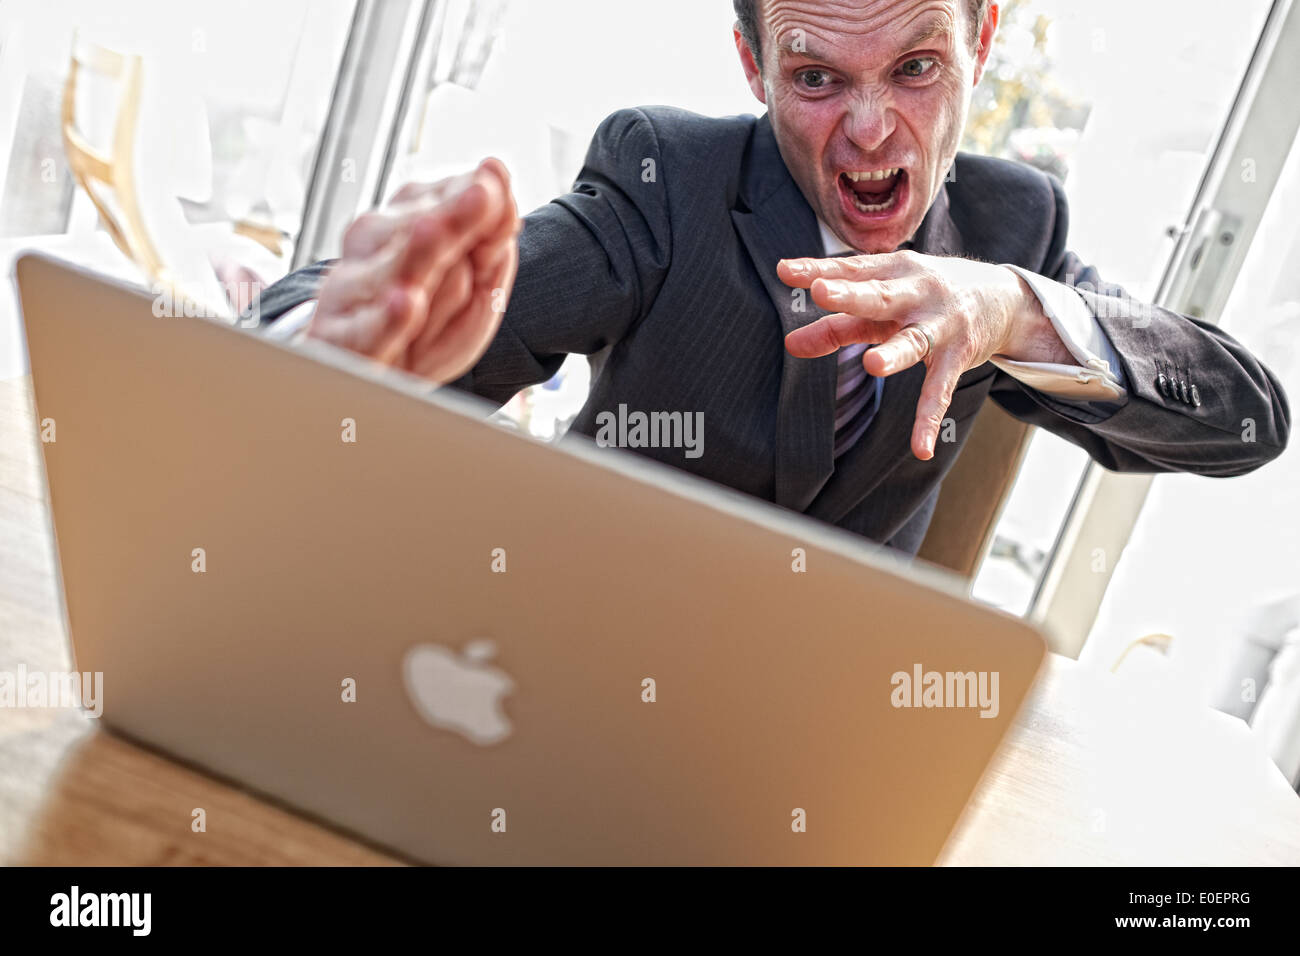 An angry businessman karate chops his laptop in frustration. - Stock Image